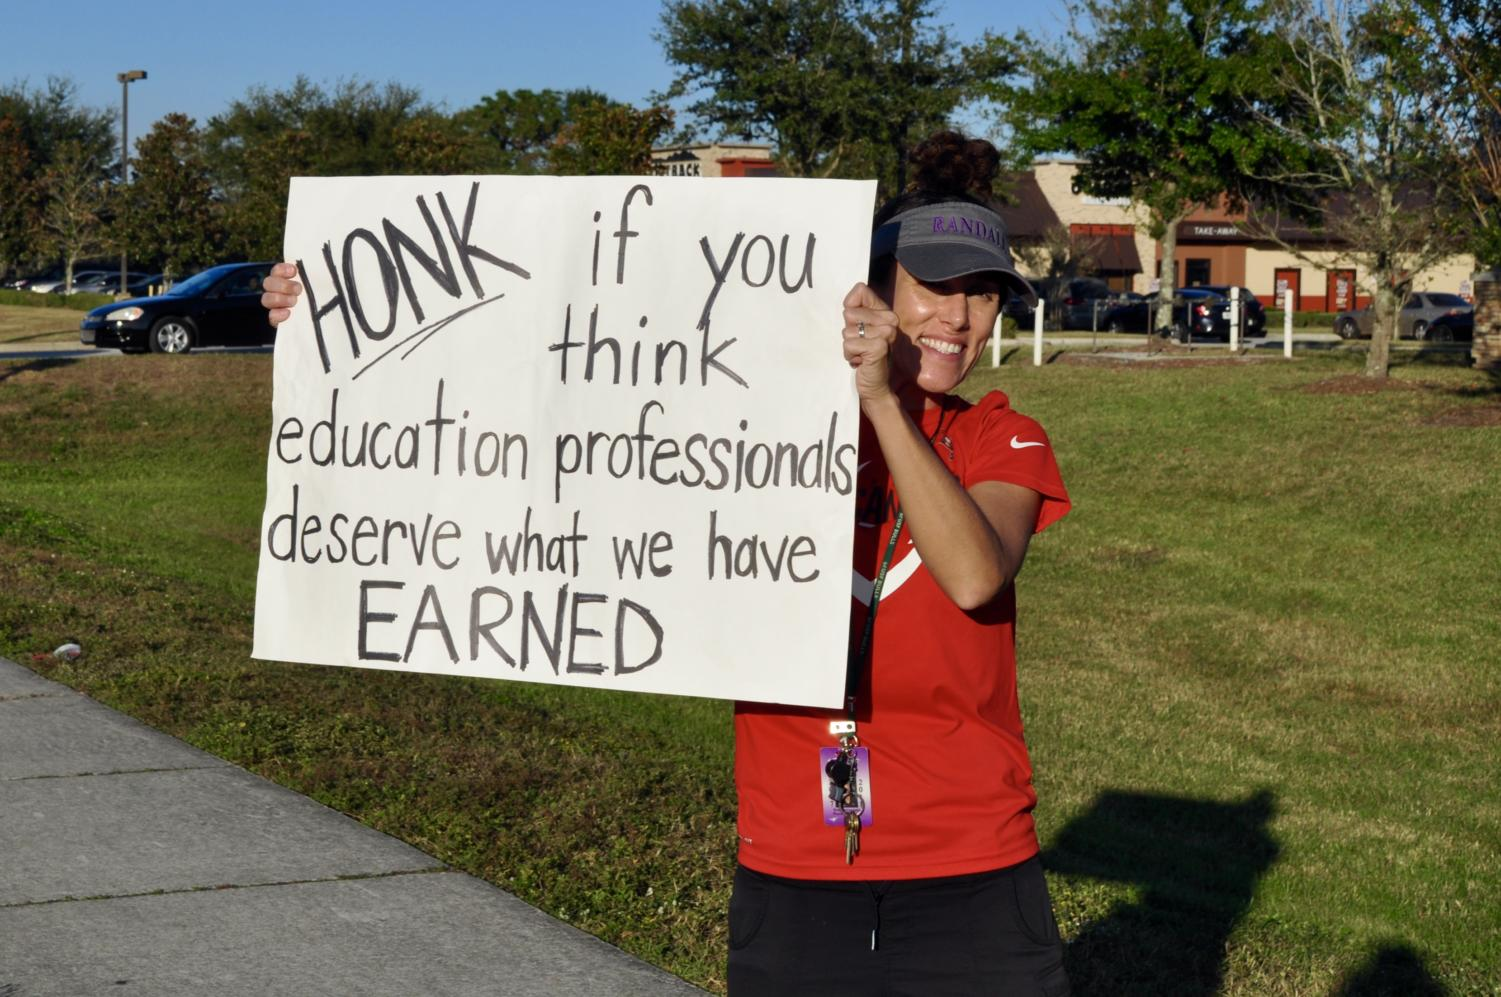 Teacher protests budget cuts that revoke promised pay raises outside Randall Middle School.